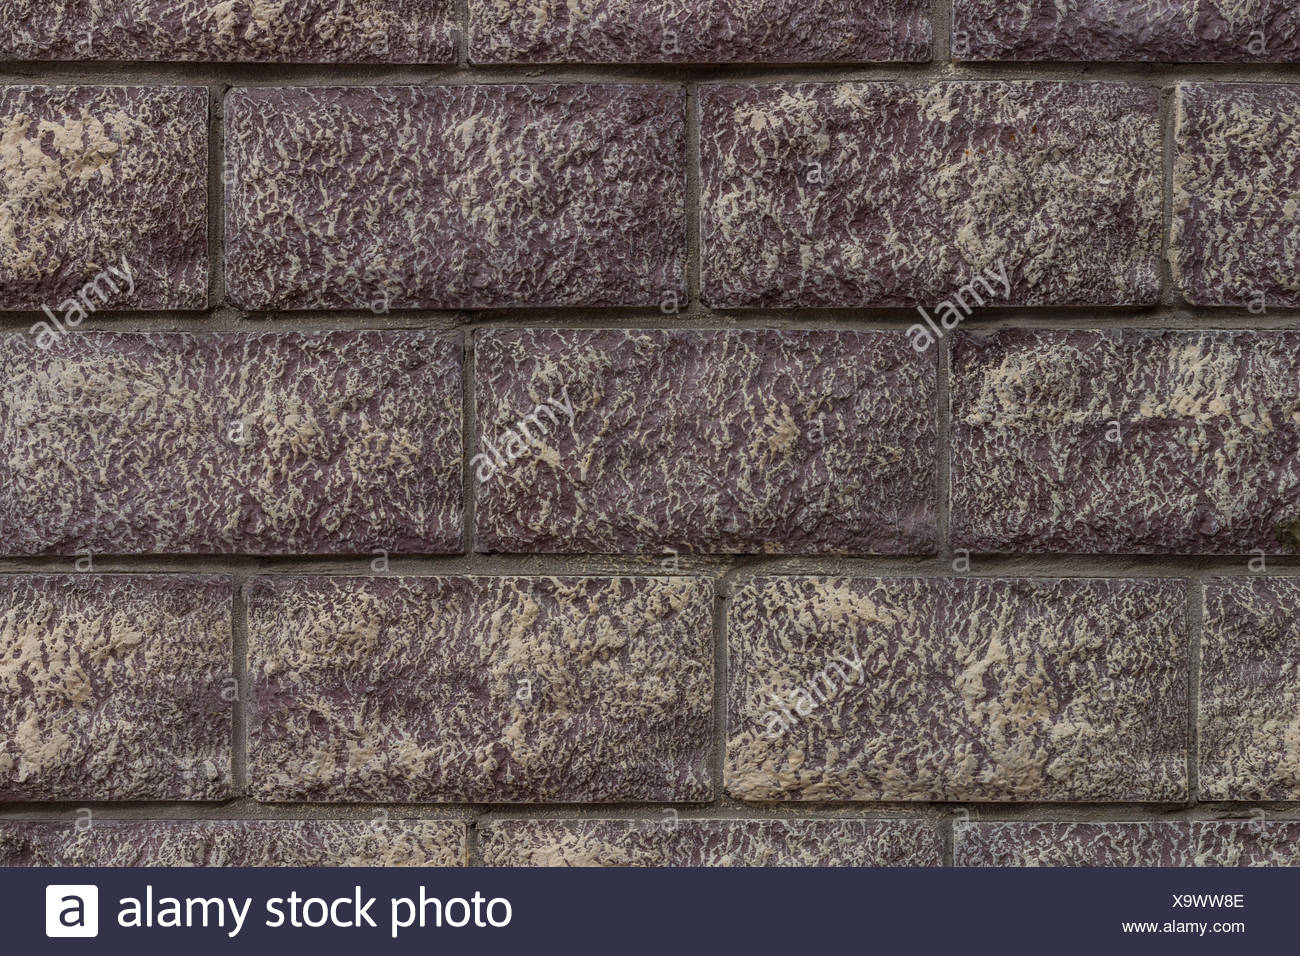 Brick tiles wall texture background - Stock Image